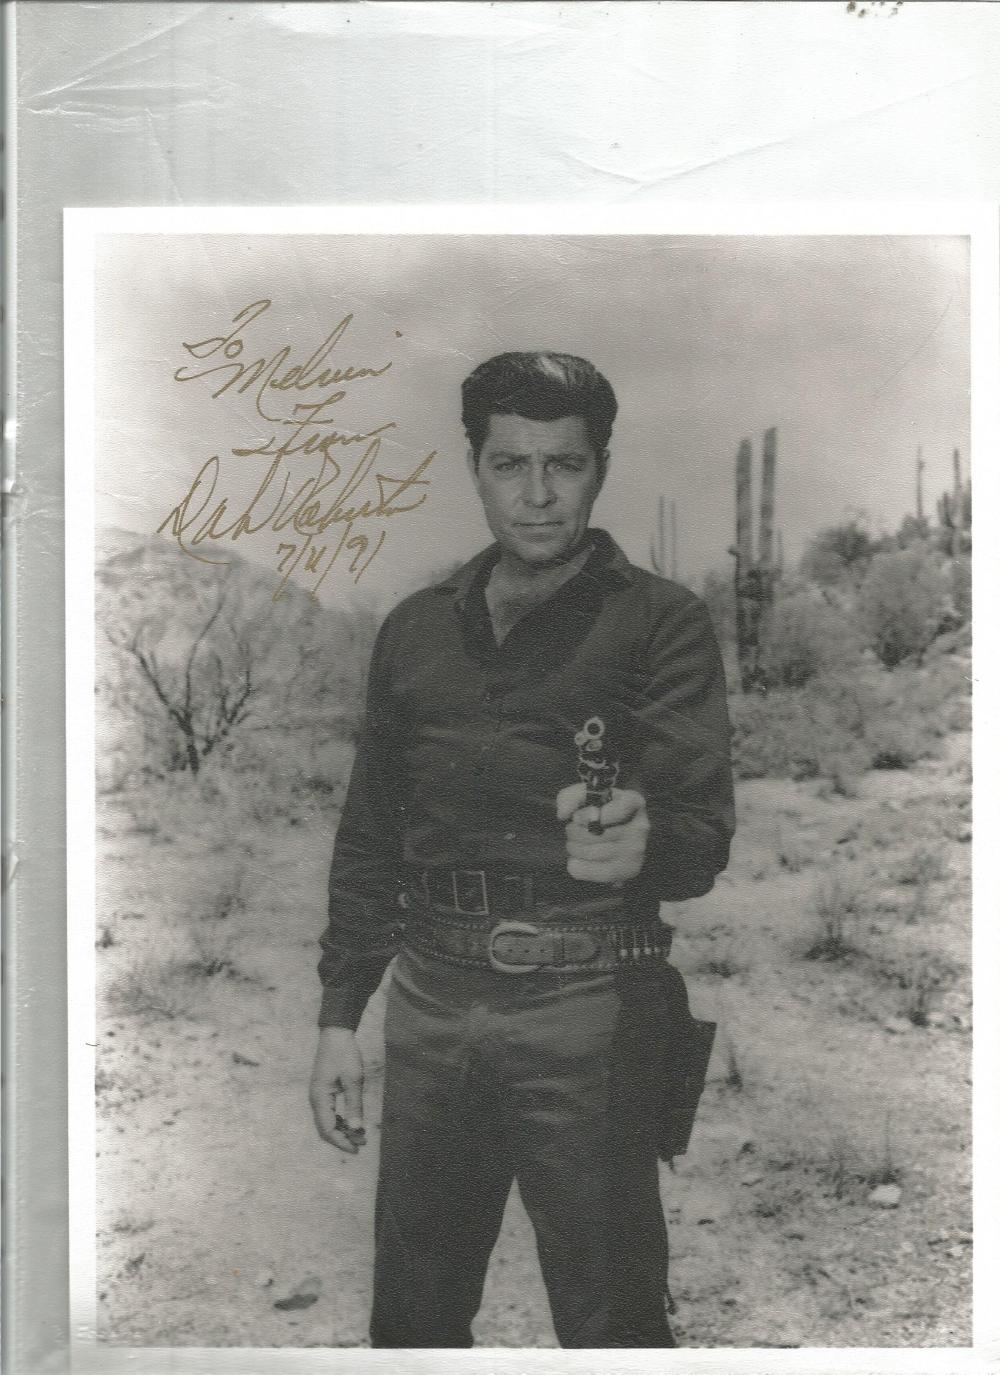 Don William signed 10 x 8 b/w Western photo dedicated. Good Condition. All signed pieces come with a